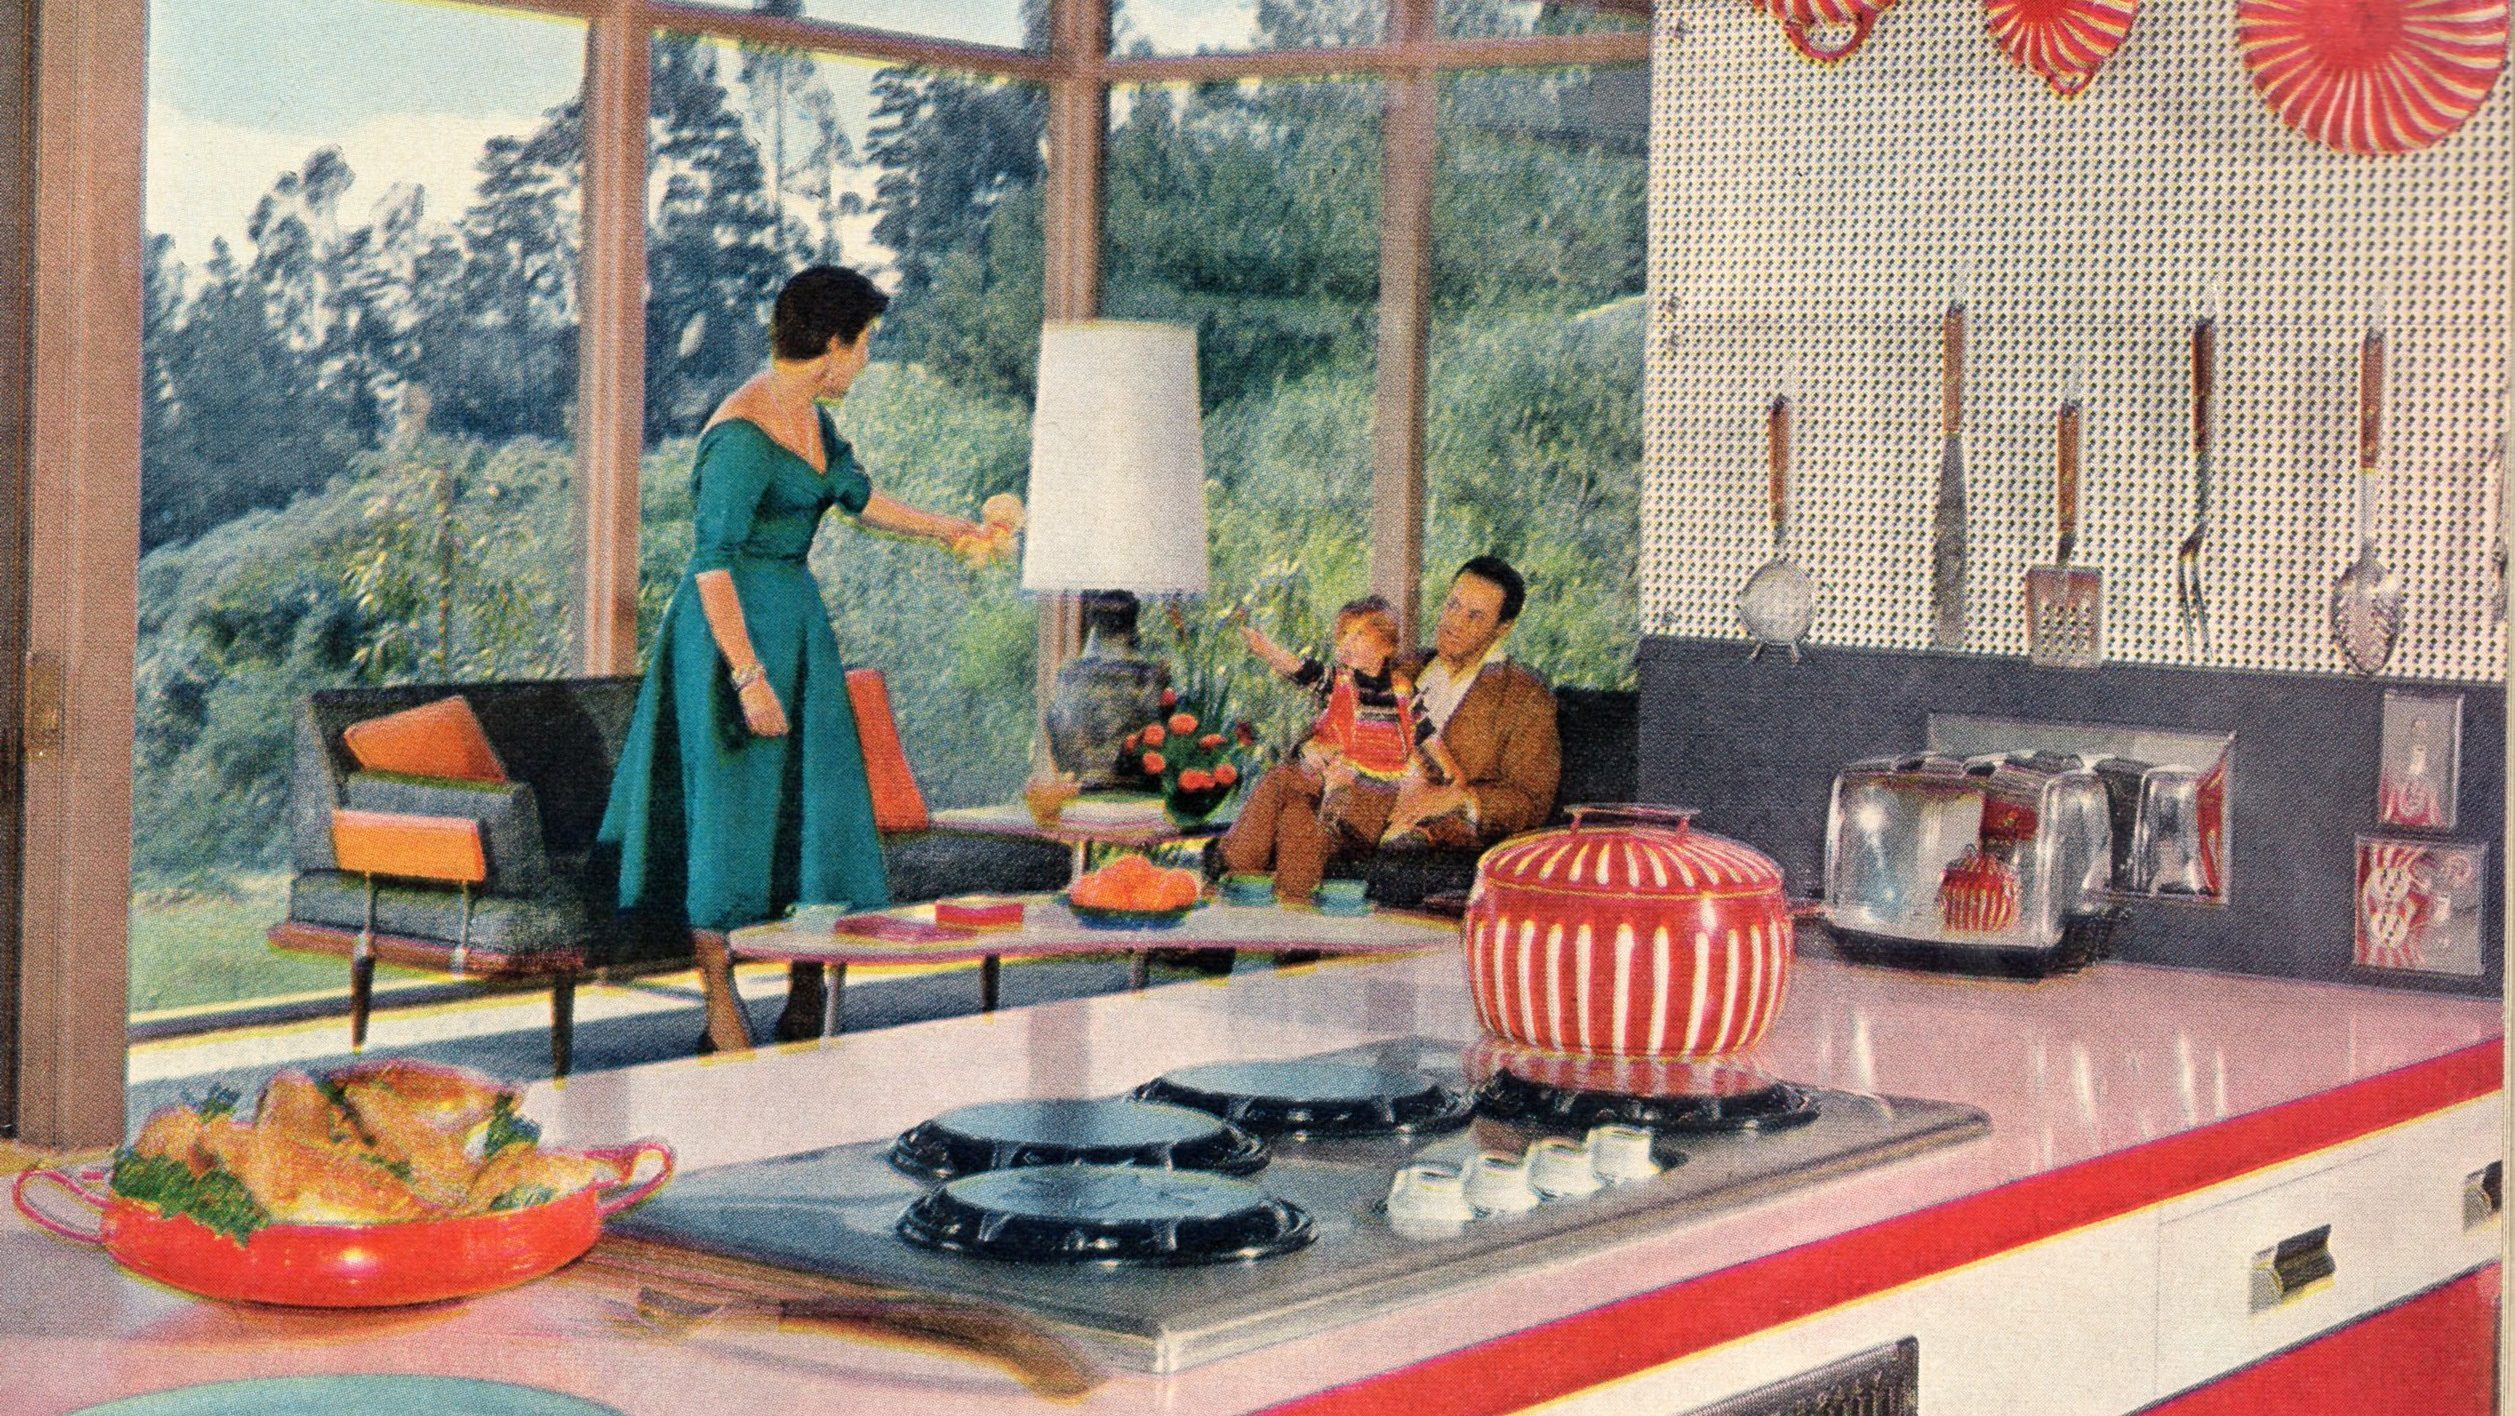 1950s Housewives